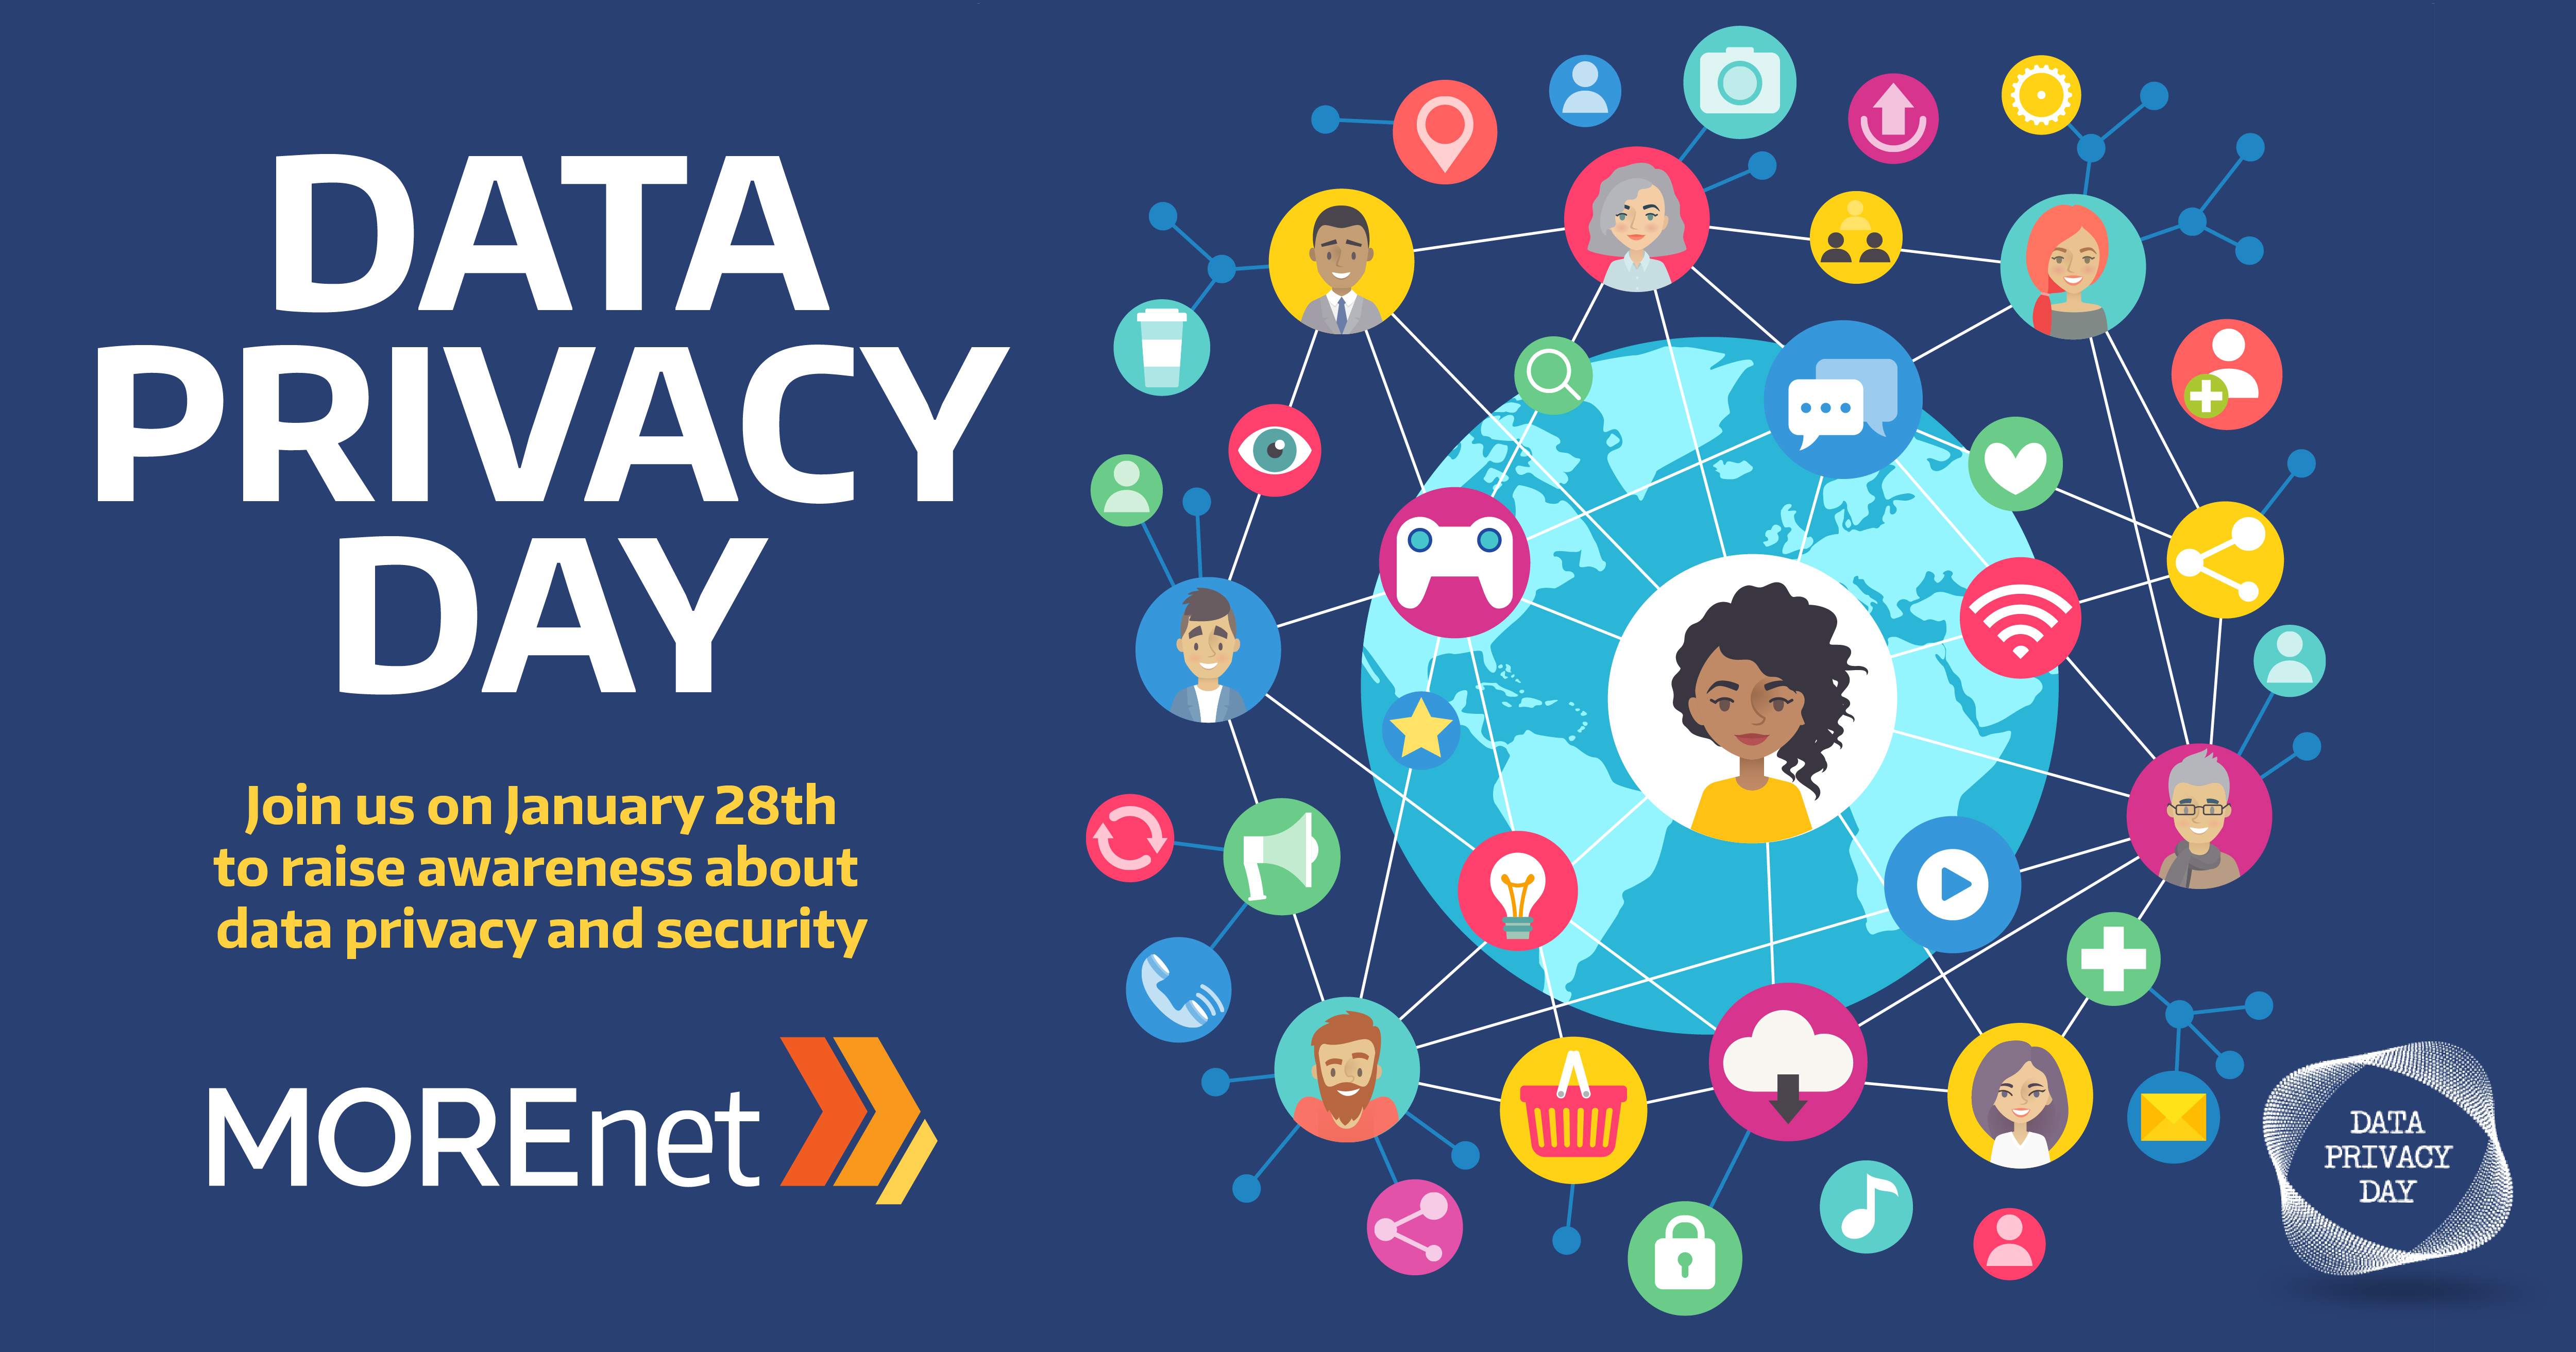 Data Privacy Day: Join us on Jan. 28 to raise awareness about data privacy and security. MOREnet.